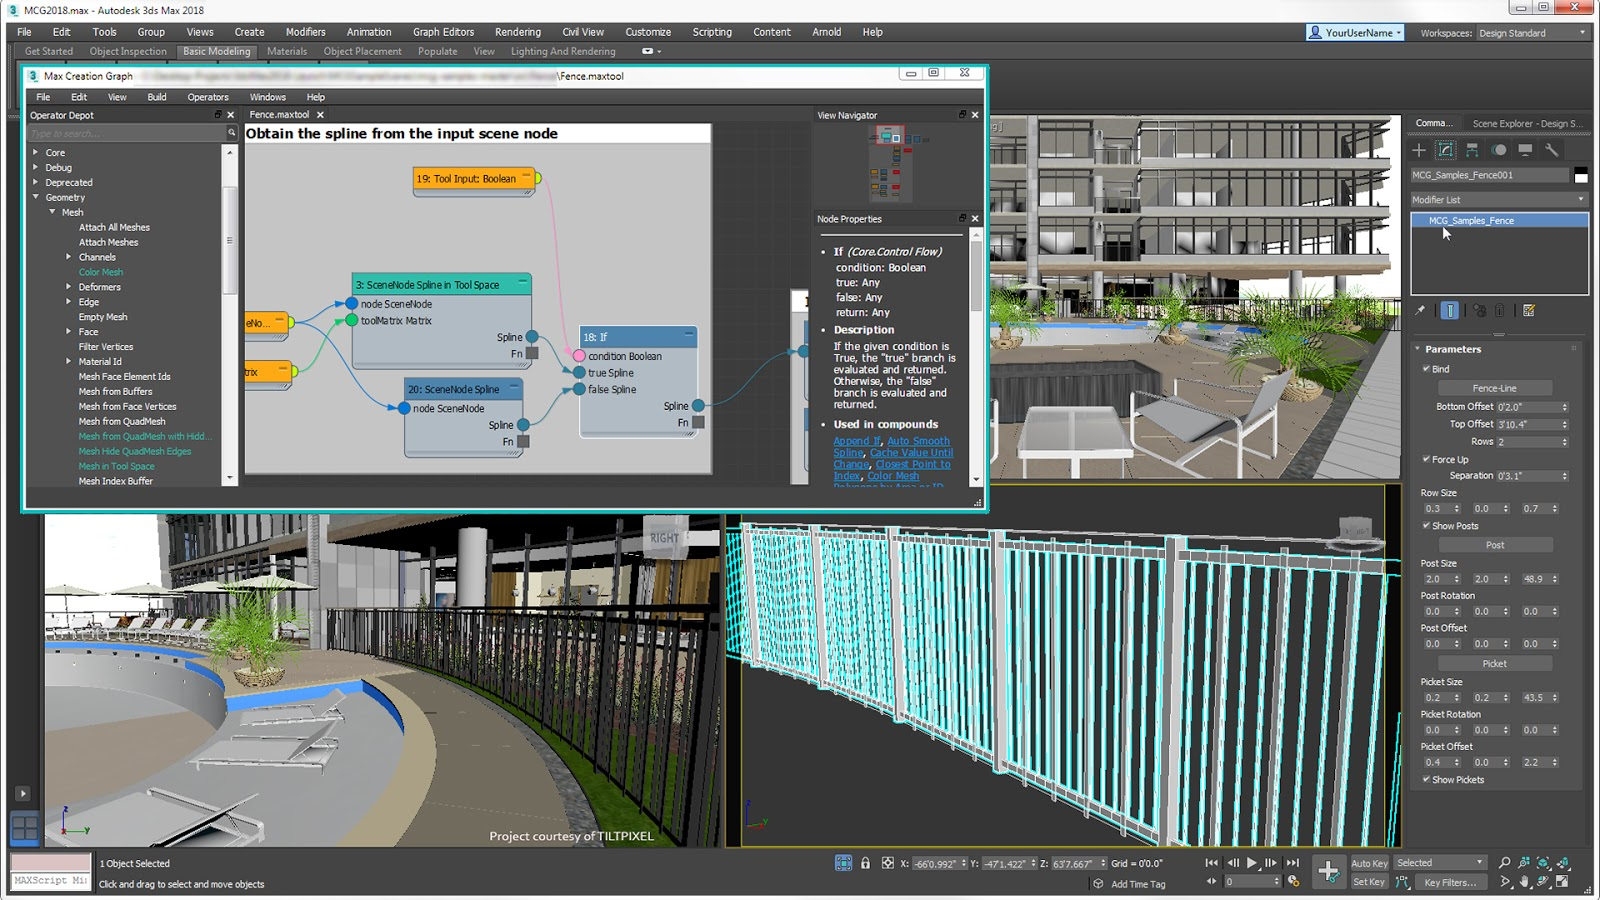 Glu3d For 3ds Max 2012 Free - viewslinoa